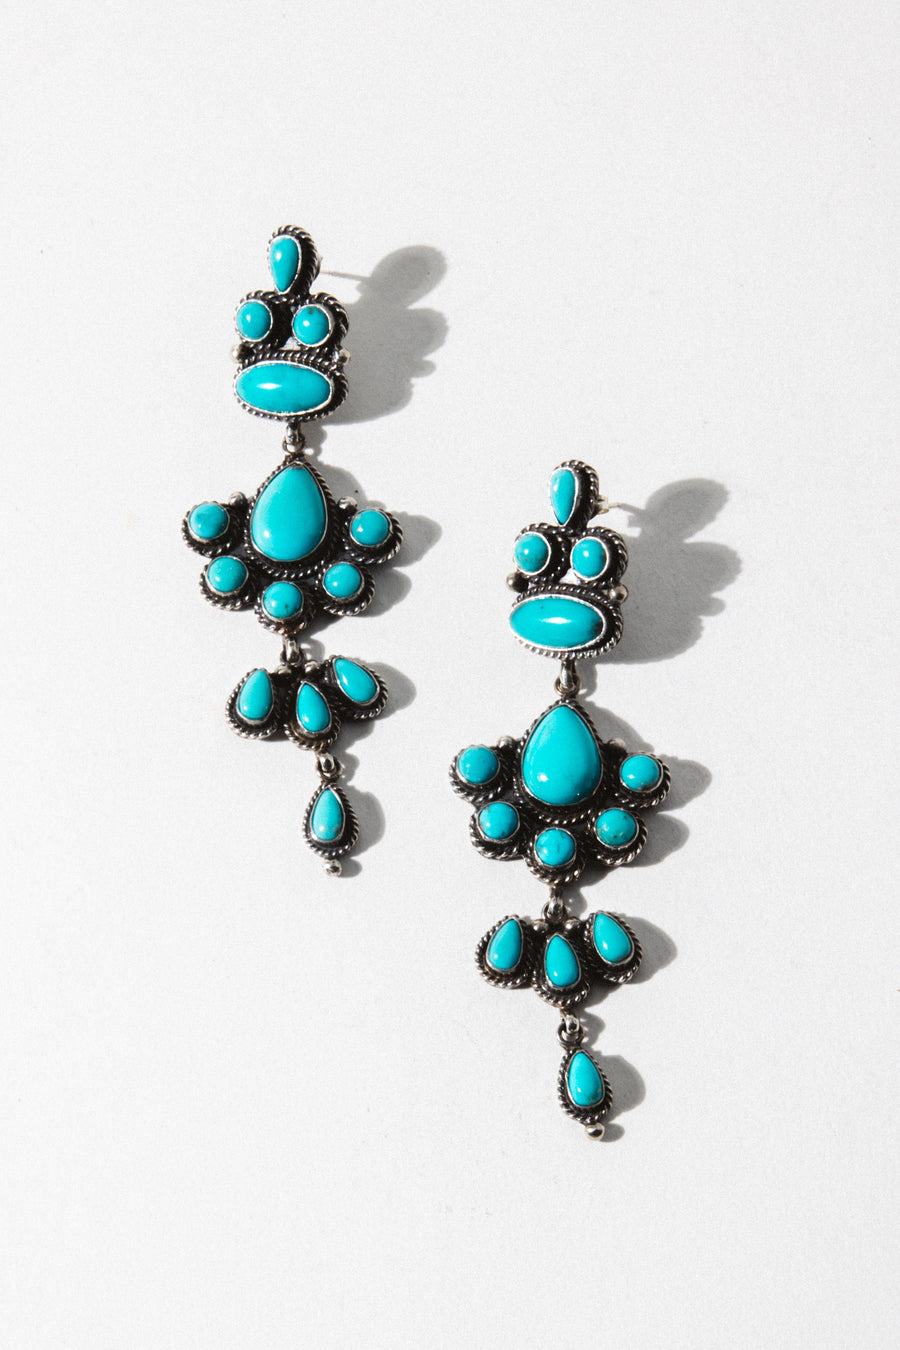 Vintage Native American Jewelry Silver Turquoise Dream Earrings